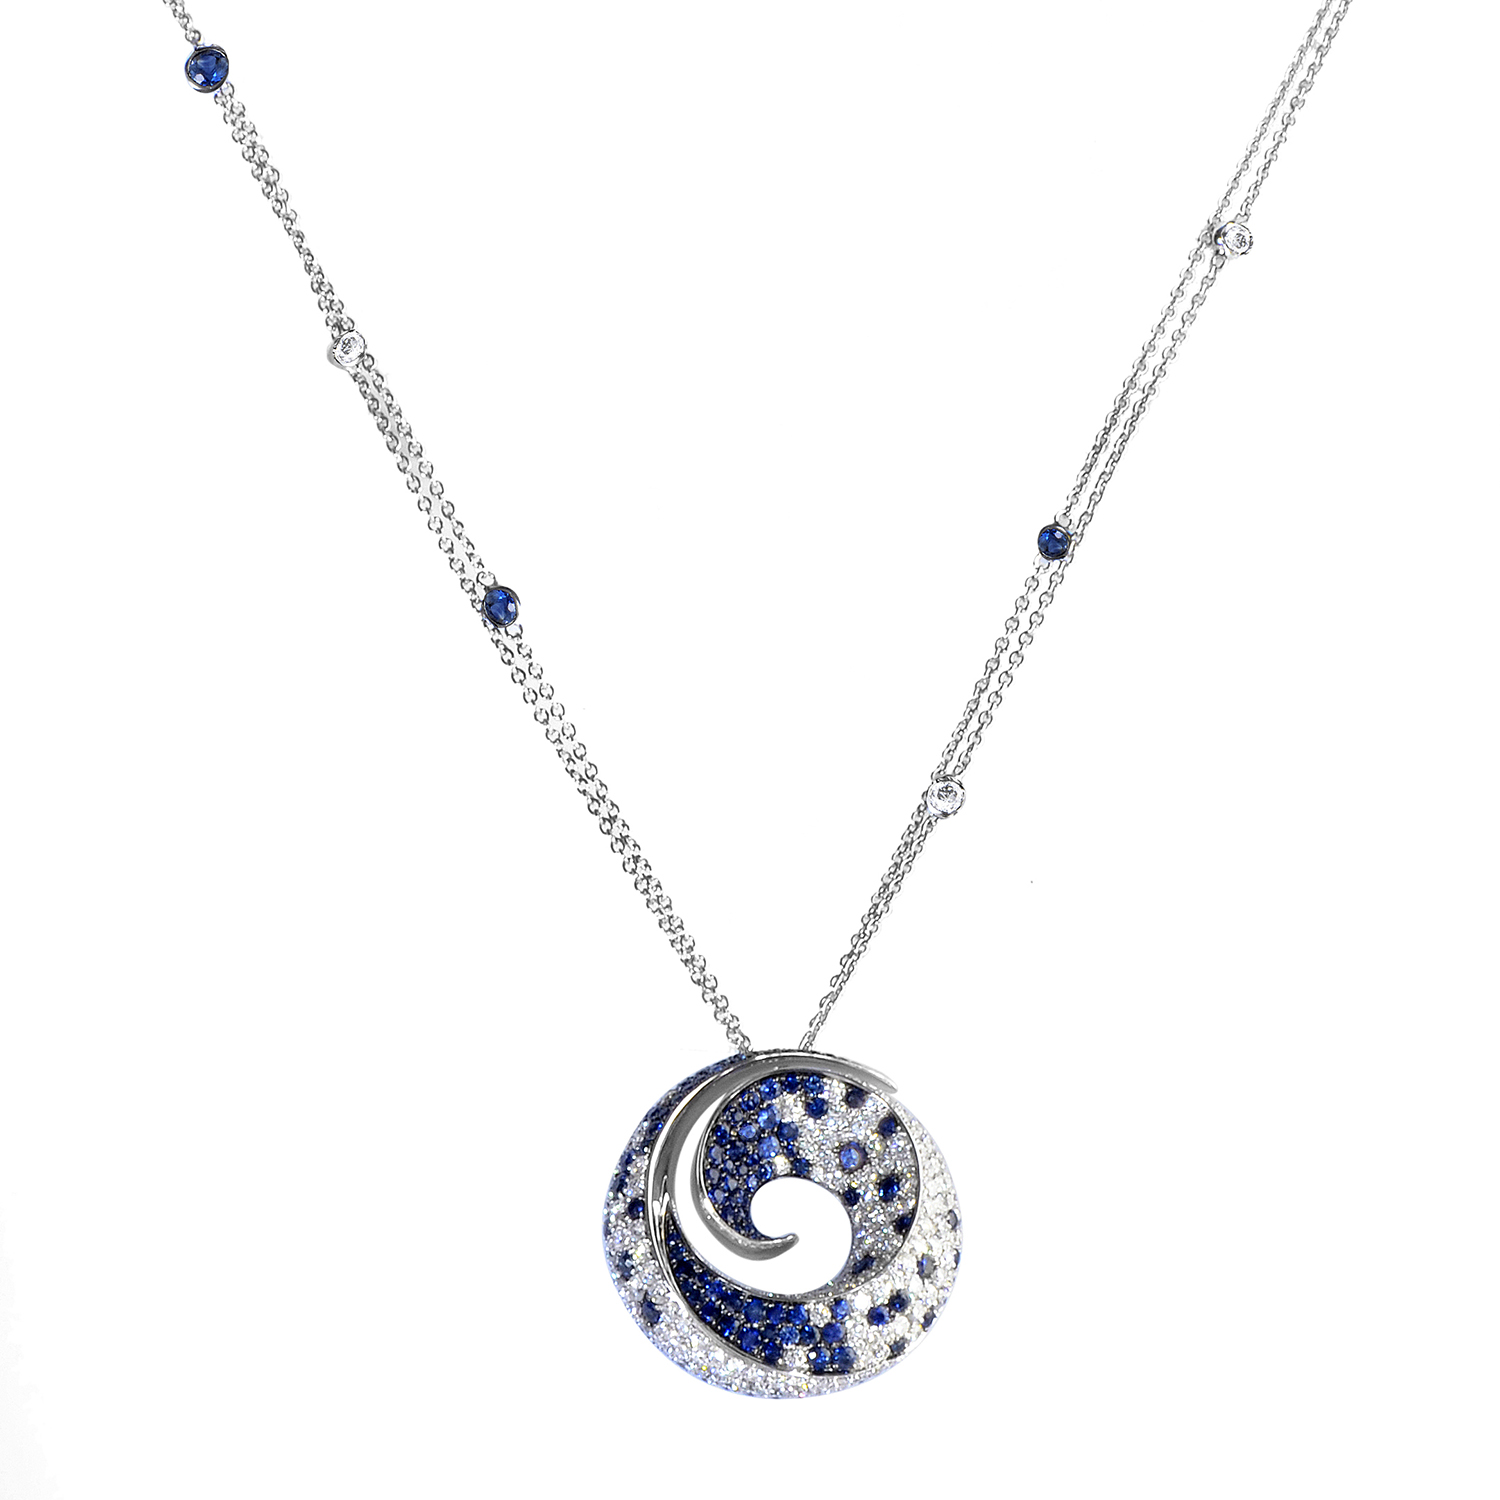 Women's 18K White Gold Diamond & Sapphire Pendant Necklace 21929286